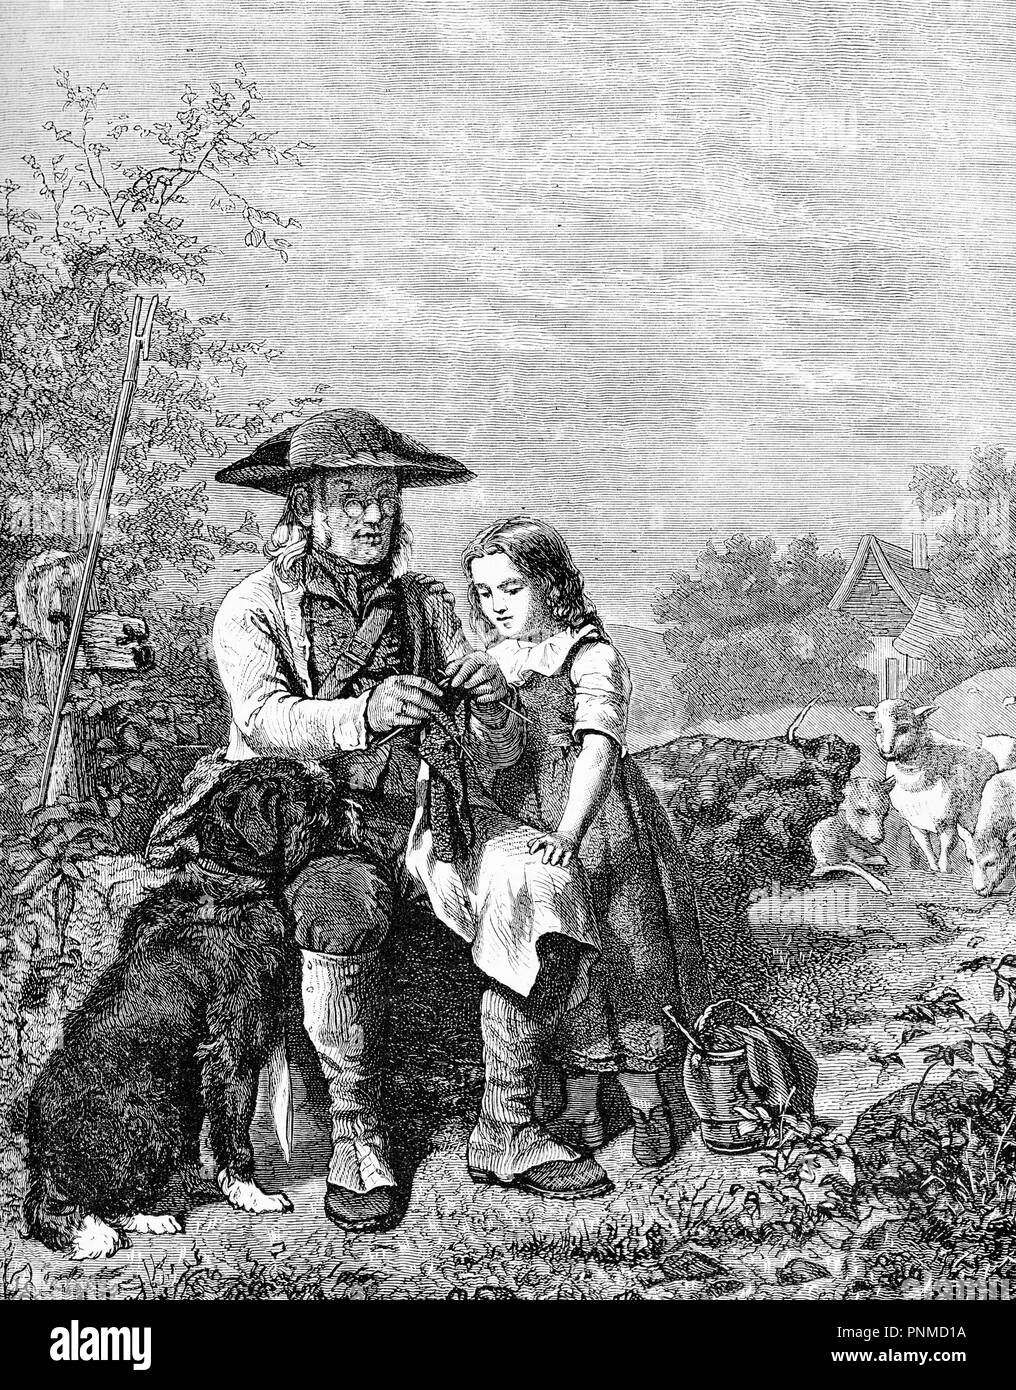 Rural life in the countryside, grandpa helps granddaughter with her needlework, sitting outside with dog and farm livestock , vintage print - Stock Image